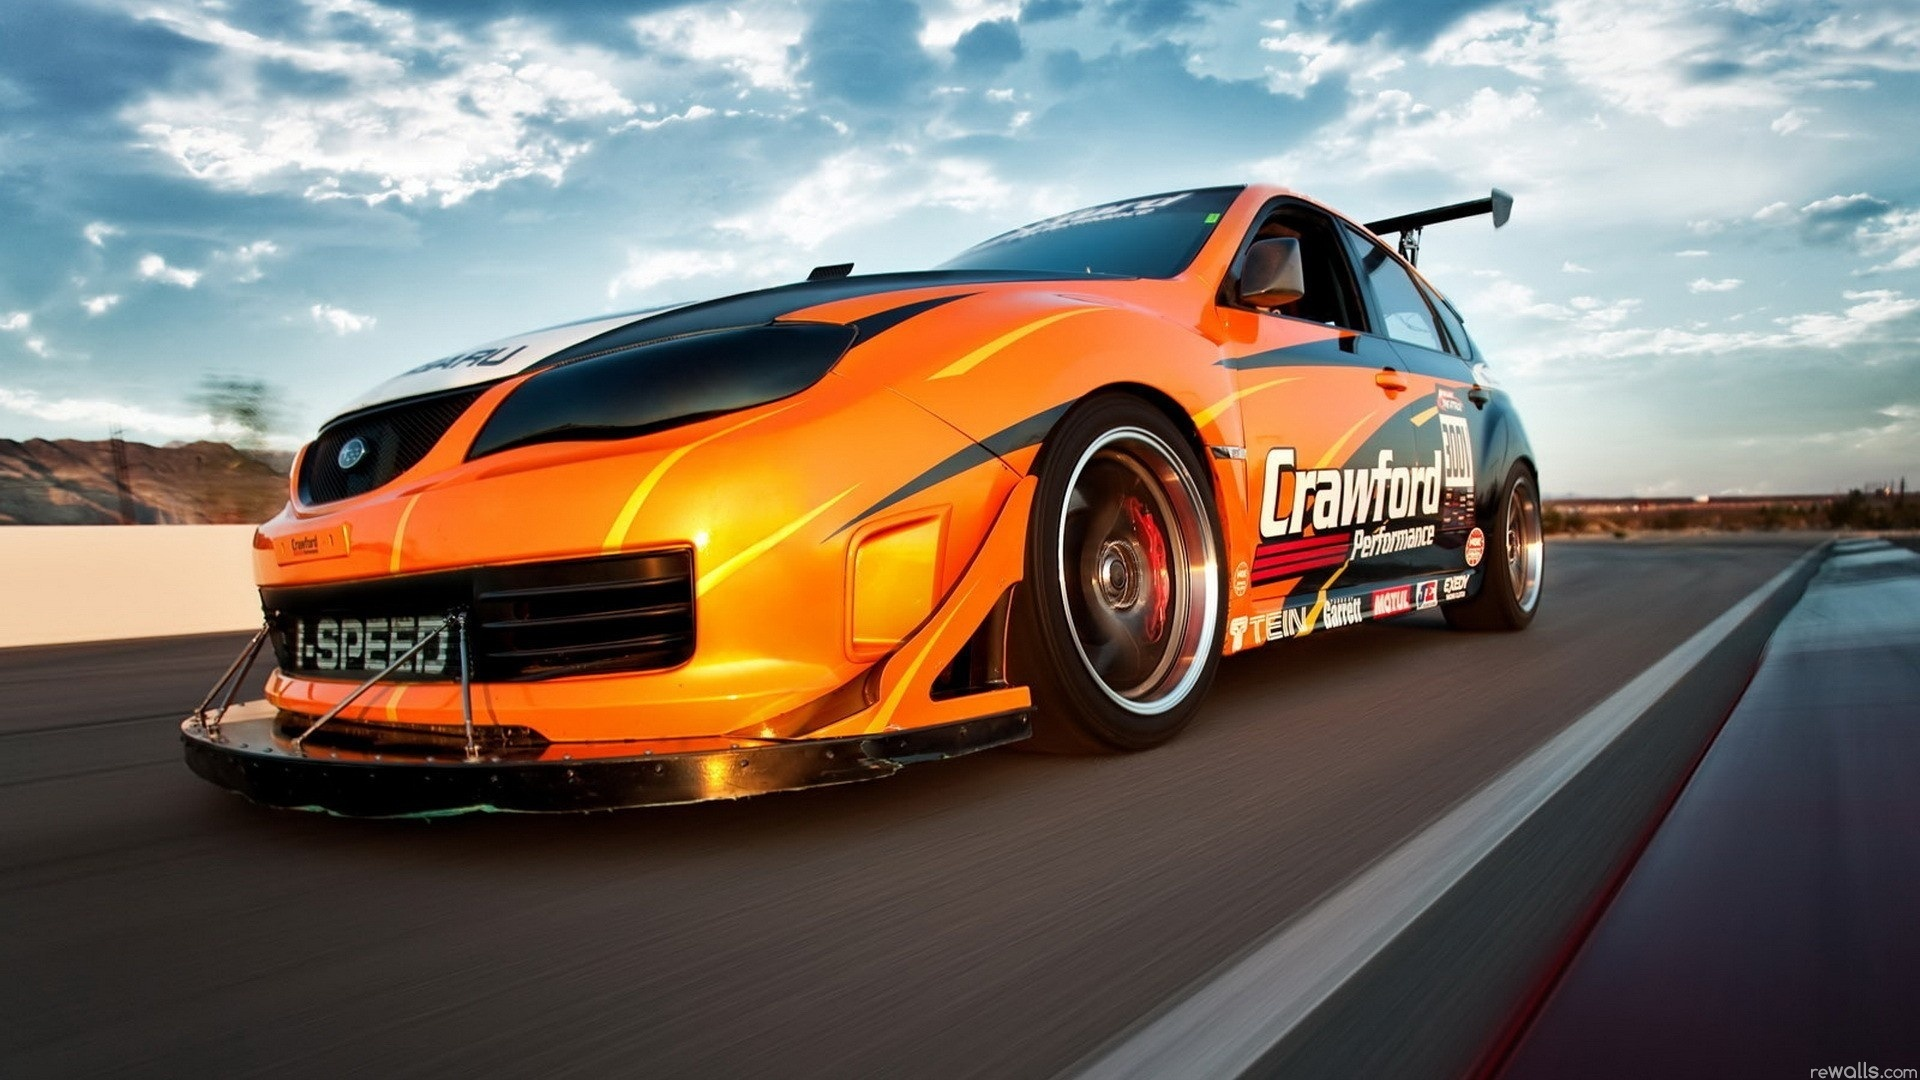 Car Wallpapers For Iphone 3gs Wallpaper Orange Speed Car 1920x1080 Full Hd 2k Picture Image